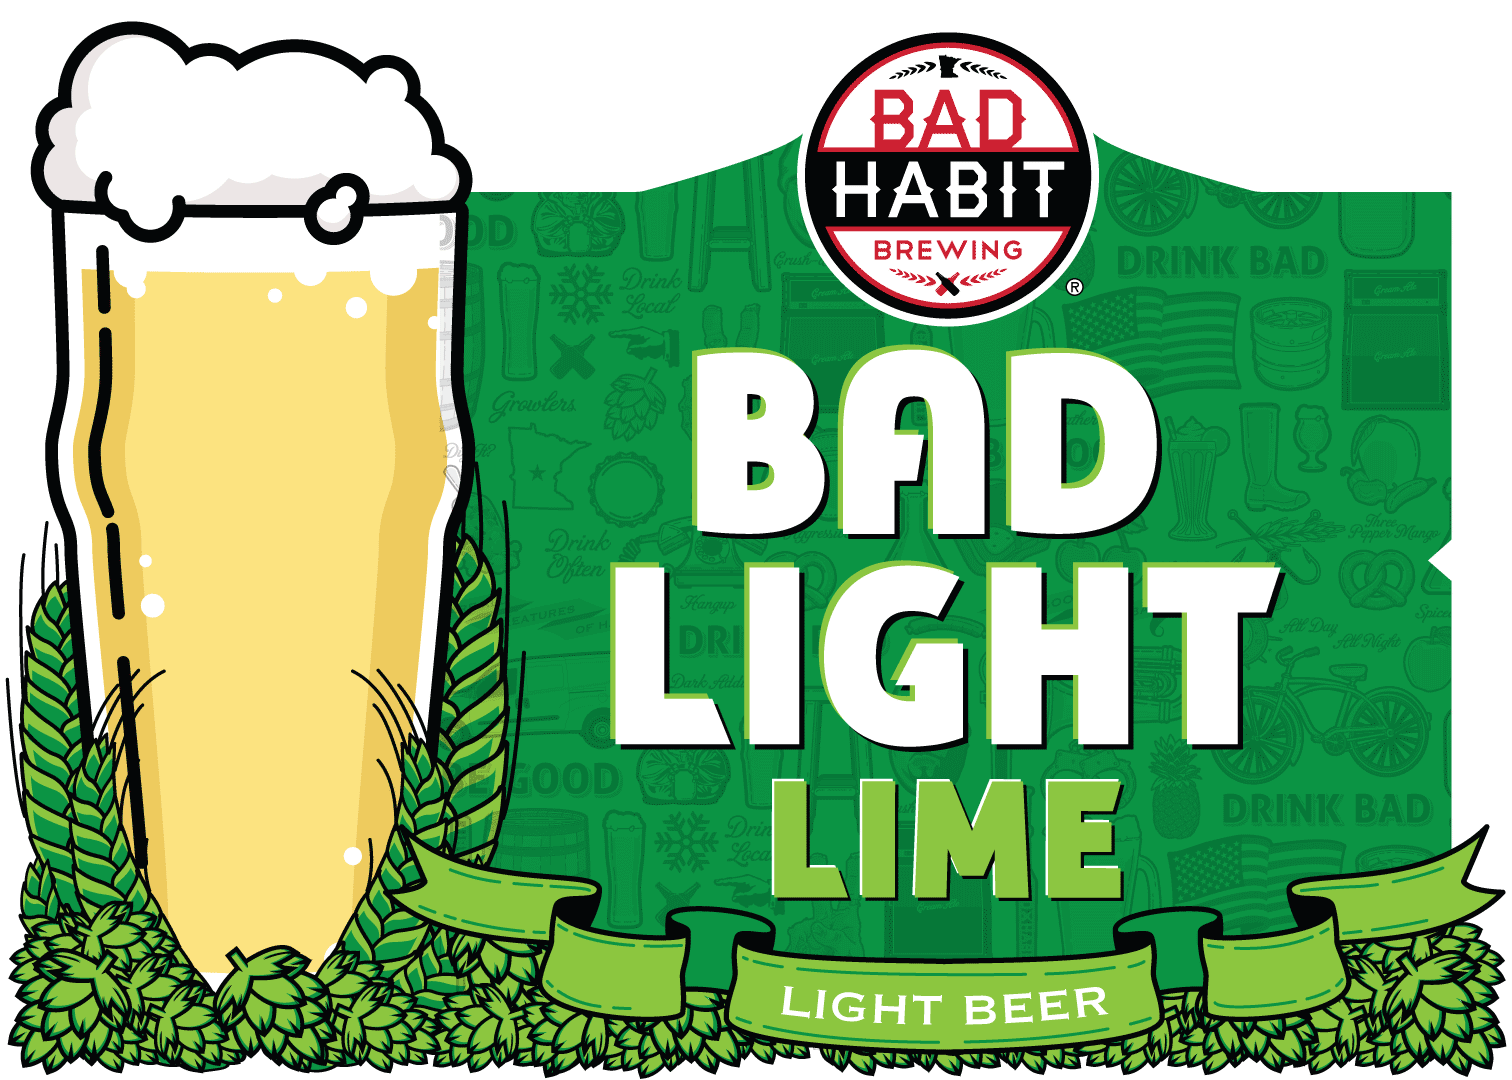 BAD LIGHT LIME - Lime Infused Light Beer | 4% ABVWe take our light craft beer that tastes like a light craft beer and we infuse it with lime. Big lime flavor in a low abv light beer. Enjoy!